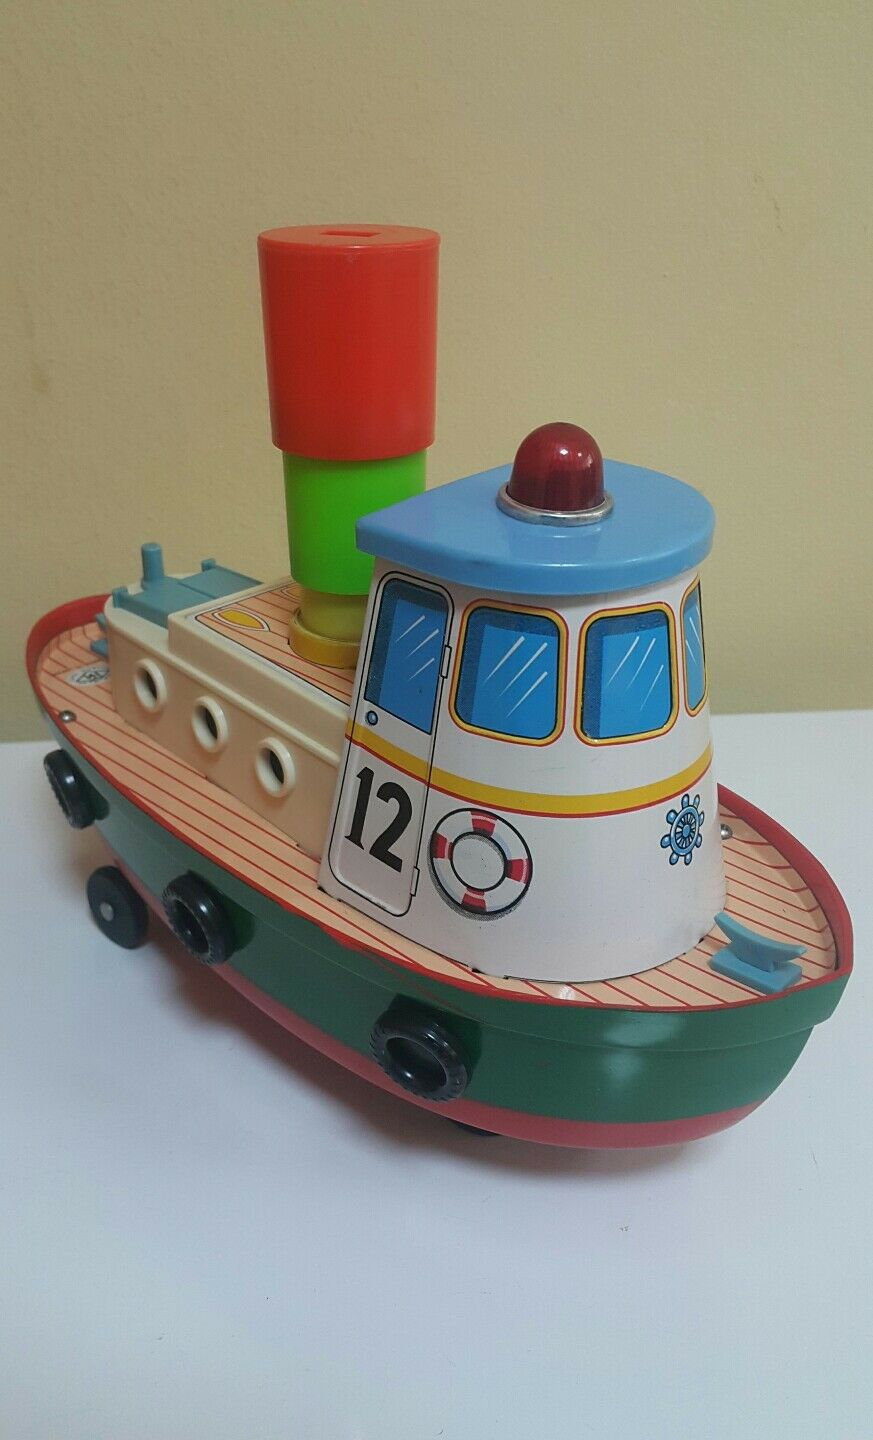 VINTAGE BOAT SHIP TOY JAPAN MODERN TOYS BATTERY OPERATED METAL PLASTIC MODEL N12